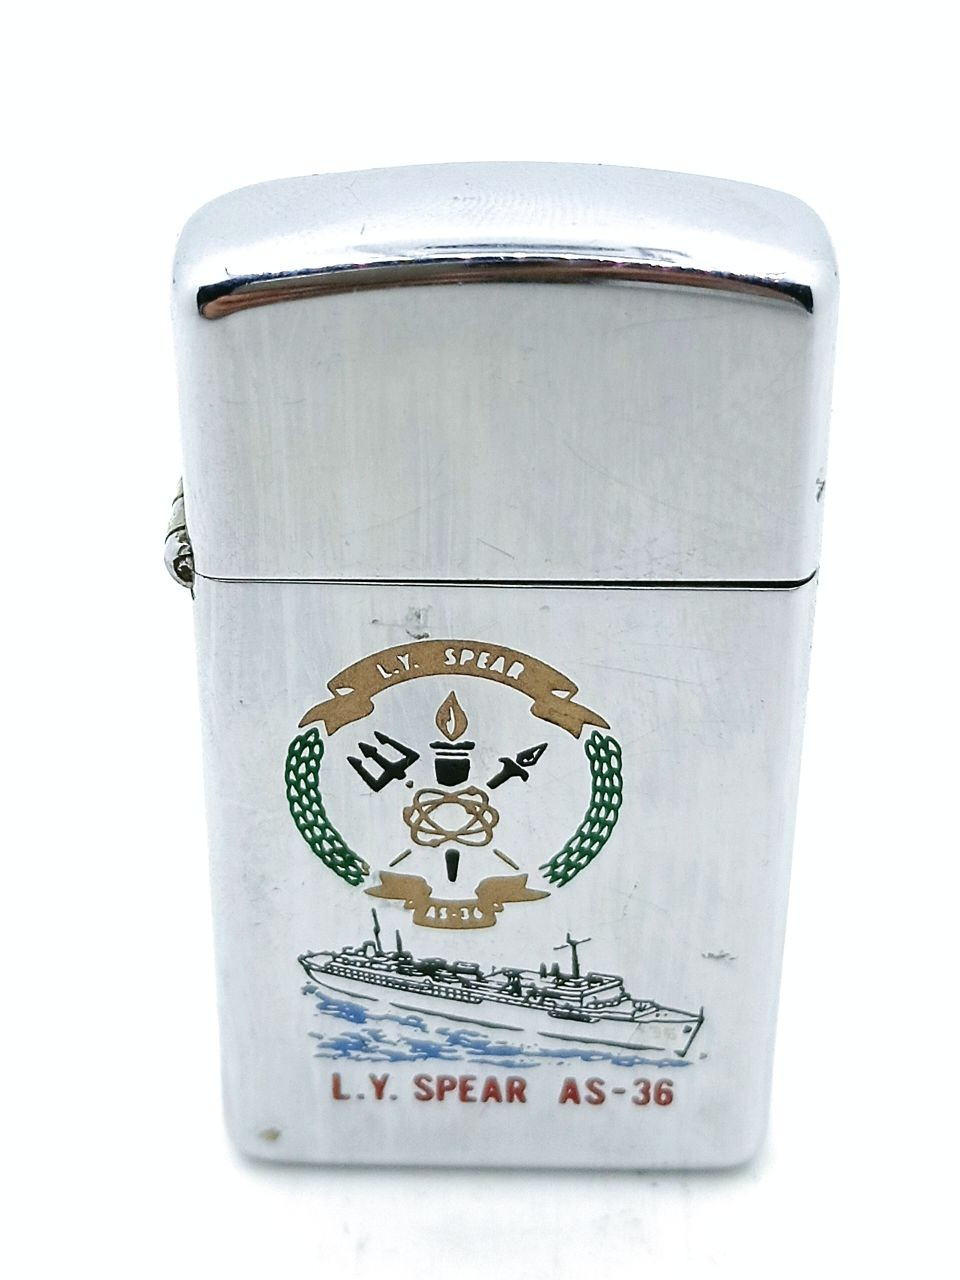 ZIPPO US L.Y SPEAR AS-36 LIGHTER